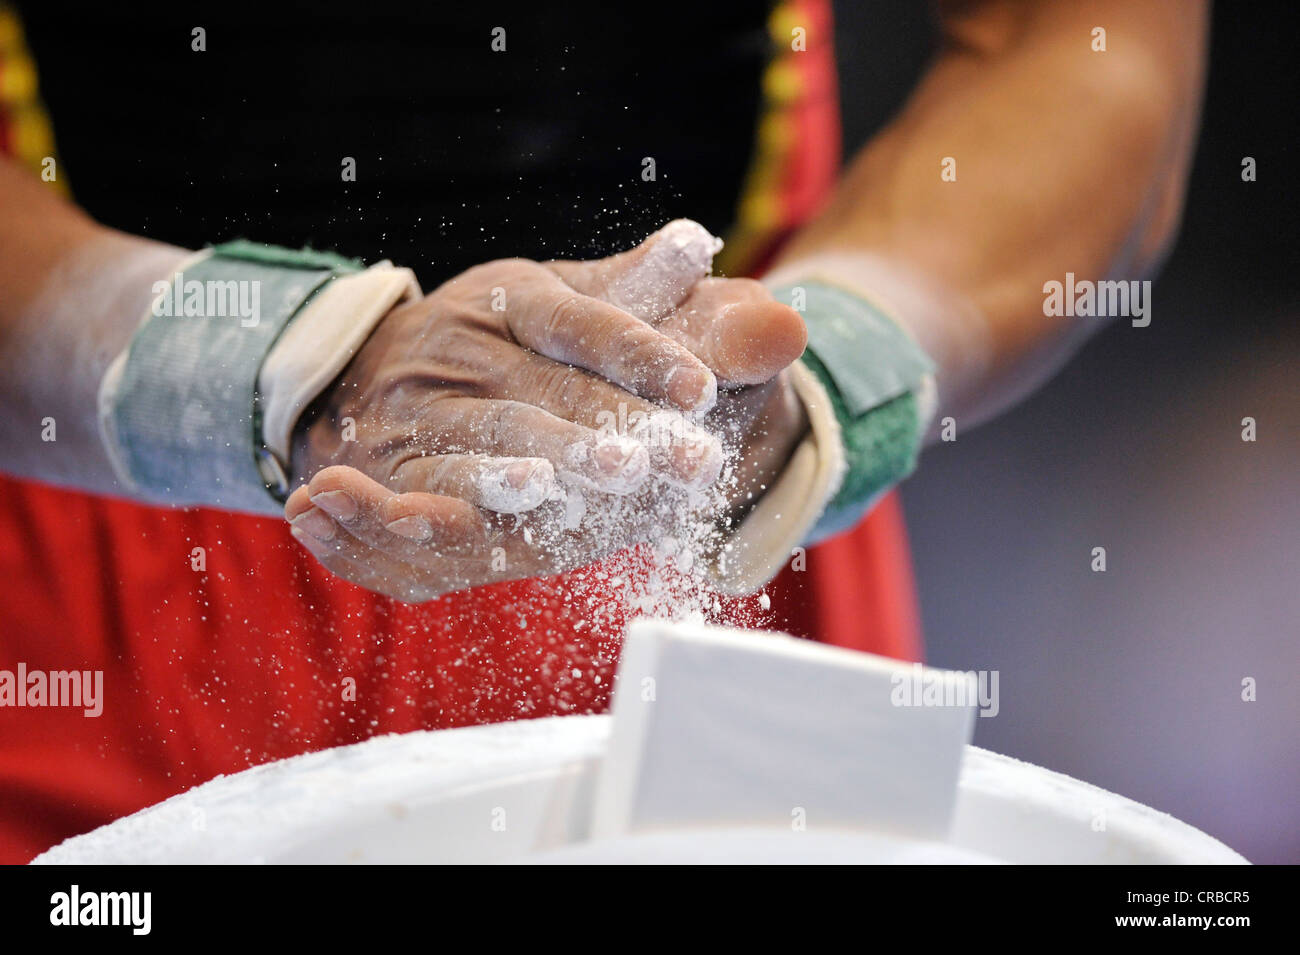 Magnesia, EnBW Gymnastics World Cup, 11 to 13 Nov 2011, 29th DTB Cup, Porsche-Arena, Stuttgart, Baden-Wuerttemberg - Stock Image